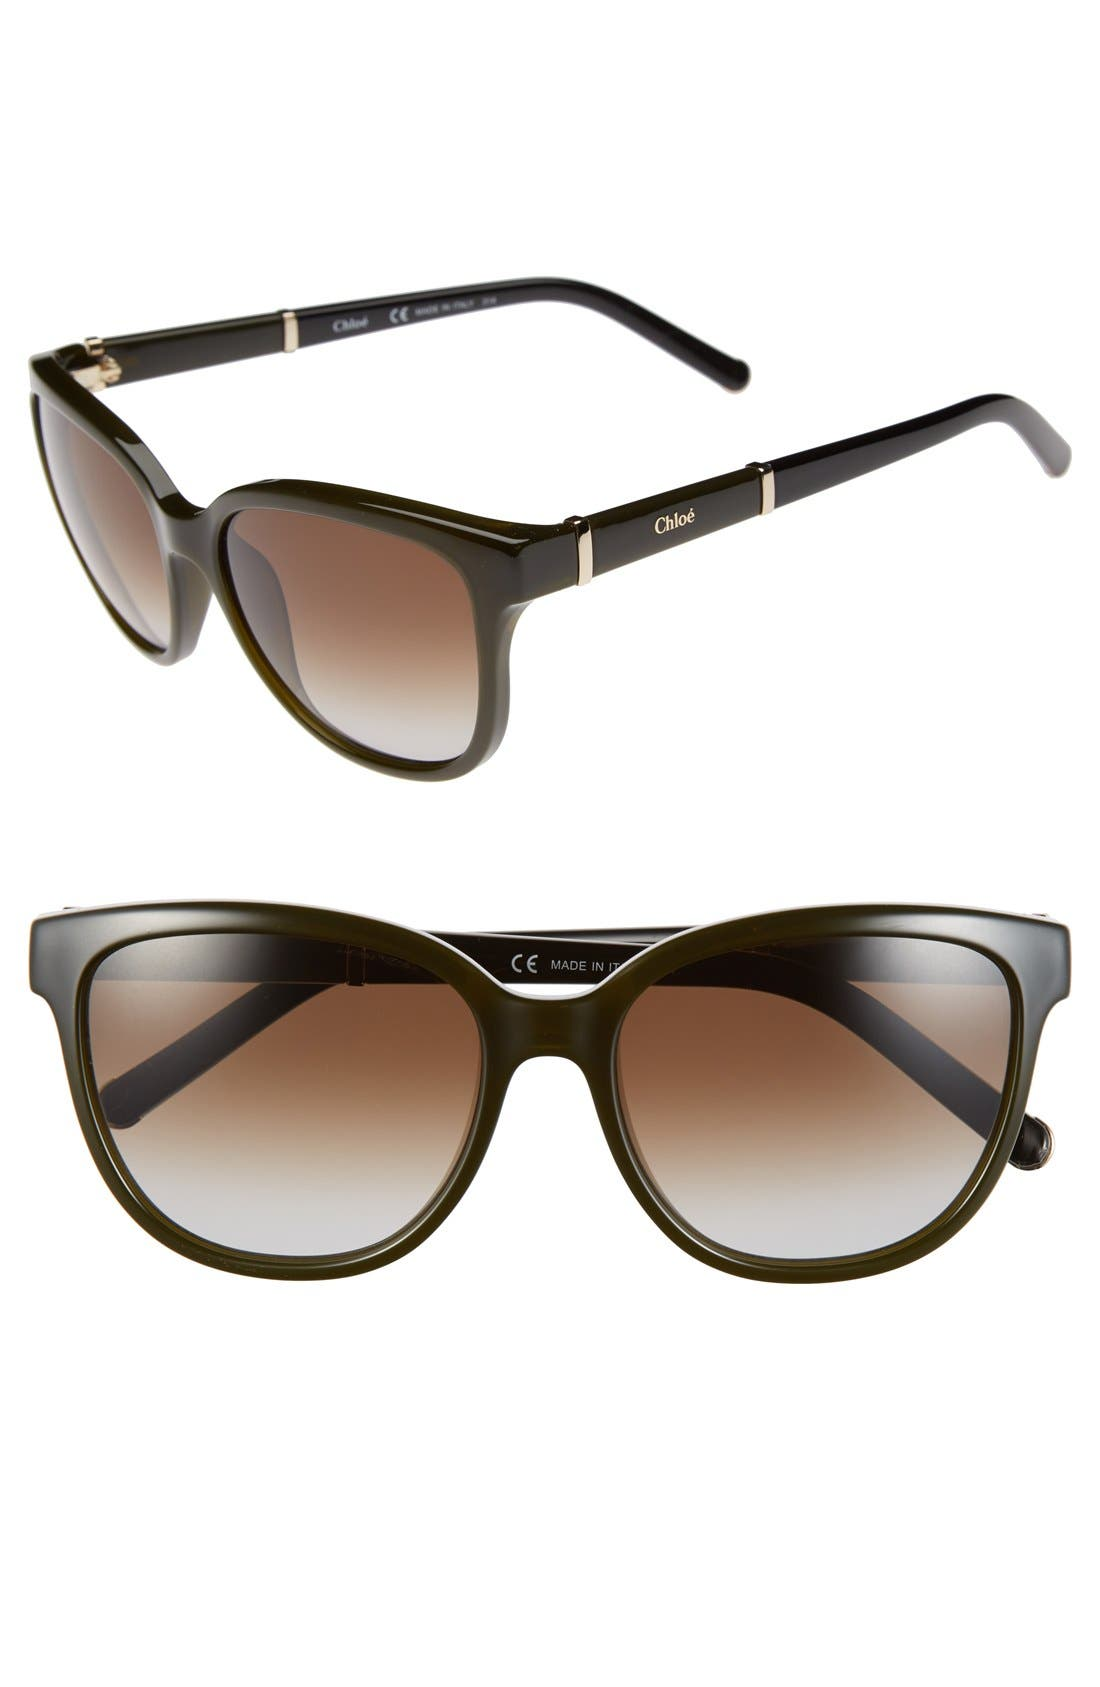 Chloé 'Daisy' 54mm Sunglasses